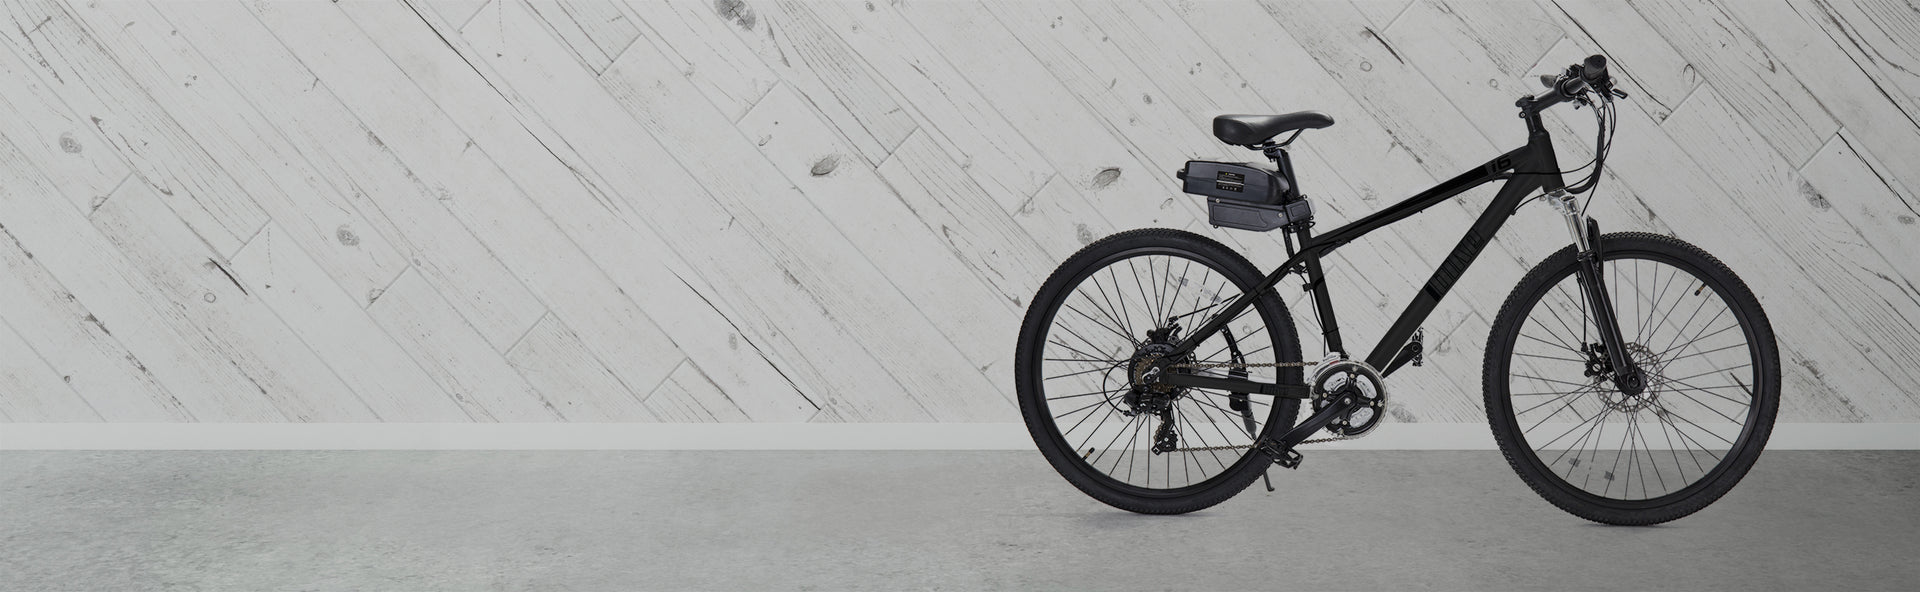 Shop Electric Bicycles Online Free 2 Day Shipping Genesis